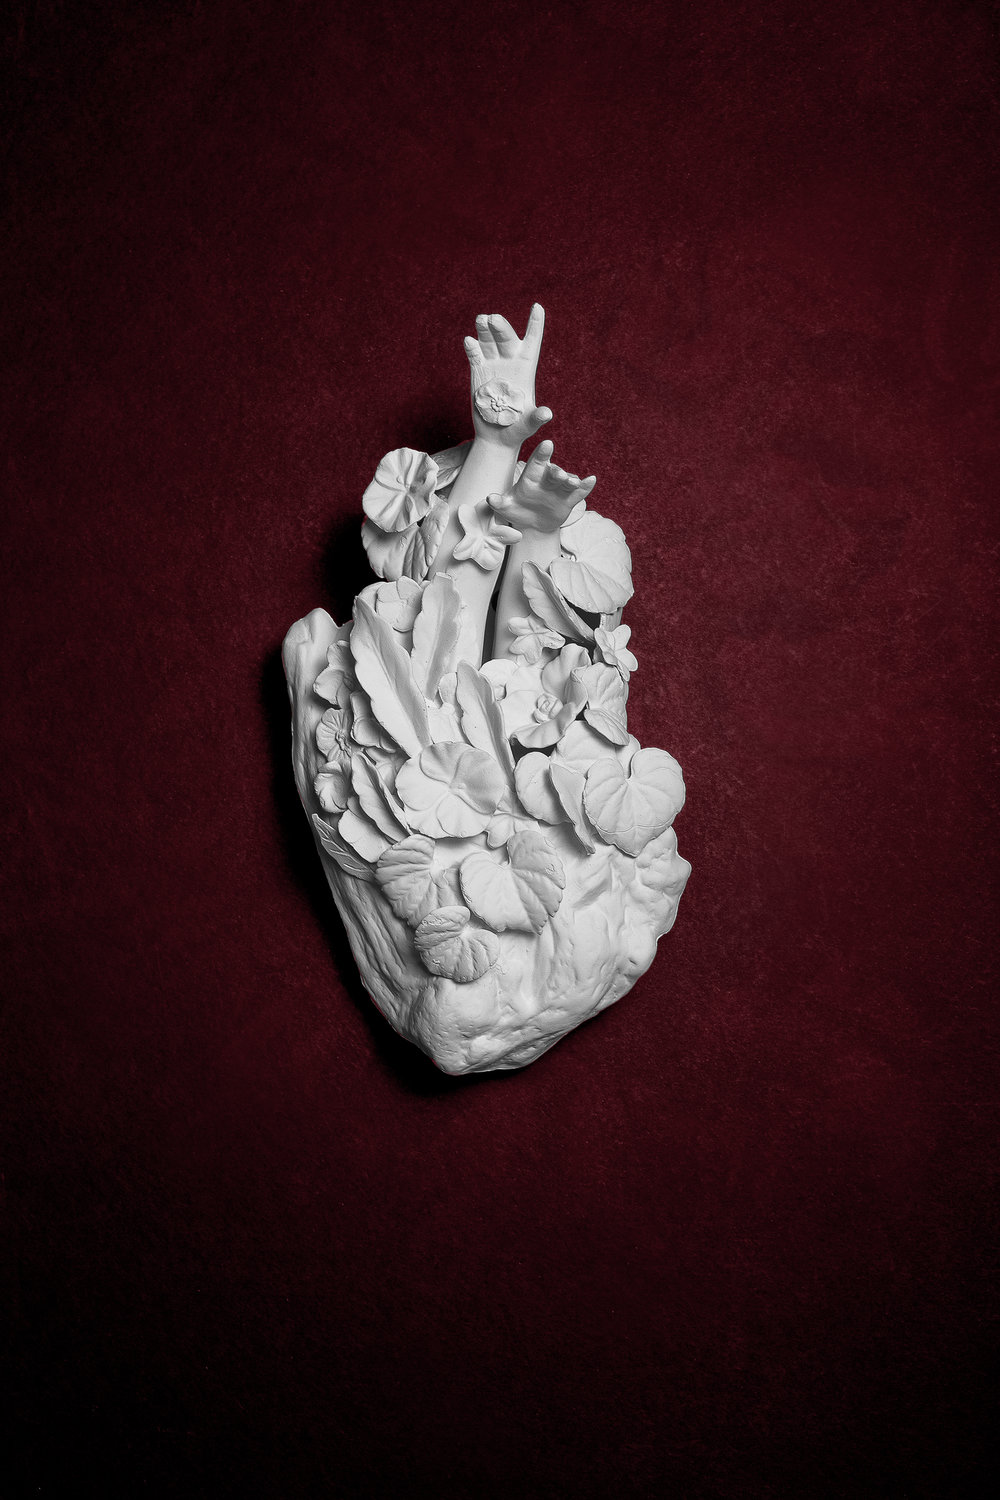 Fall from grace (Beautiful absense)  Medium: Slipped cast porcelain ceramic, hand build & altered forms Dimensions:  Year: 2019  Photography by: David Gary Lloyd